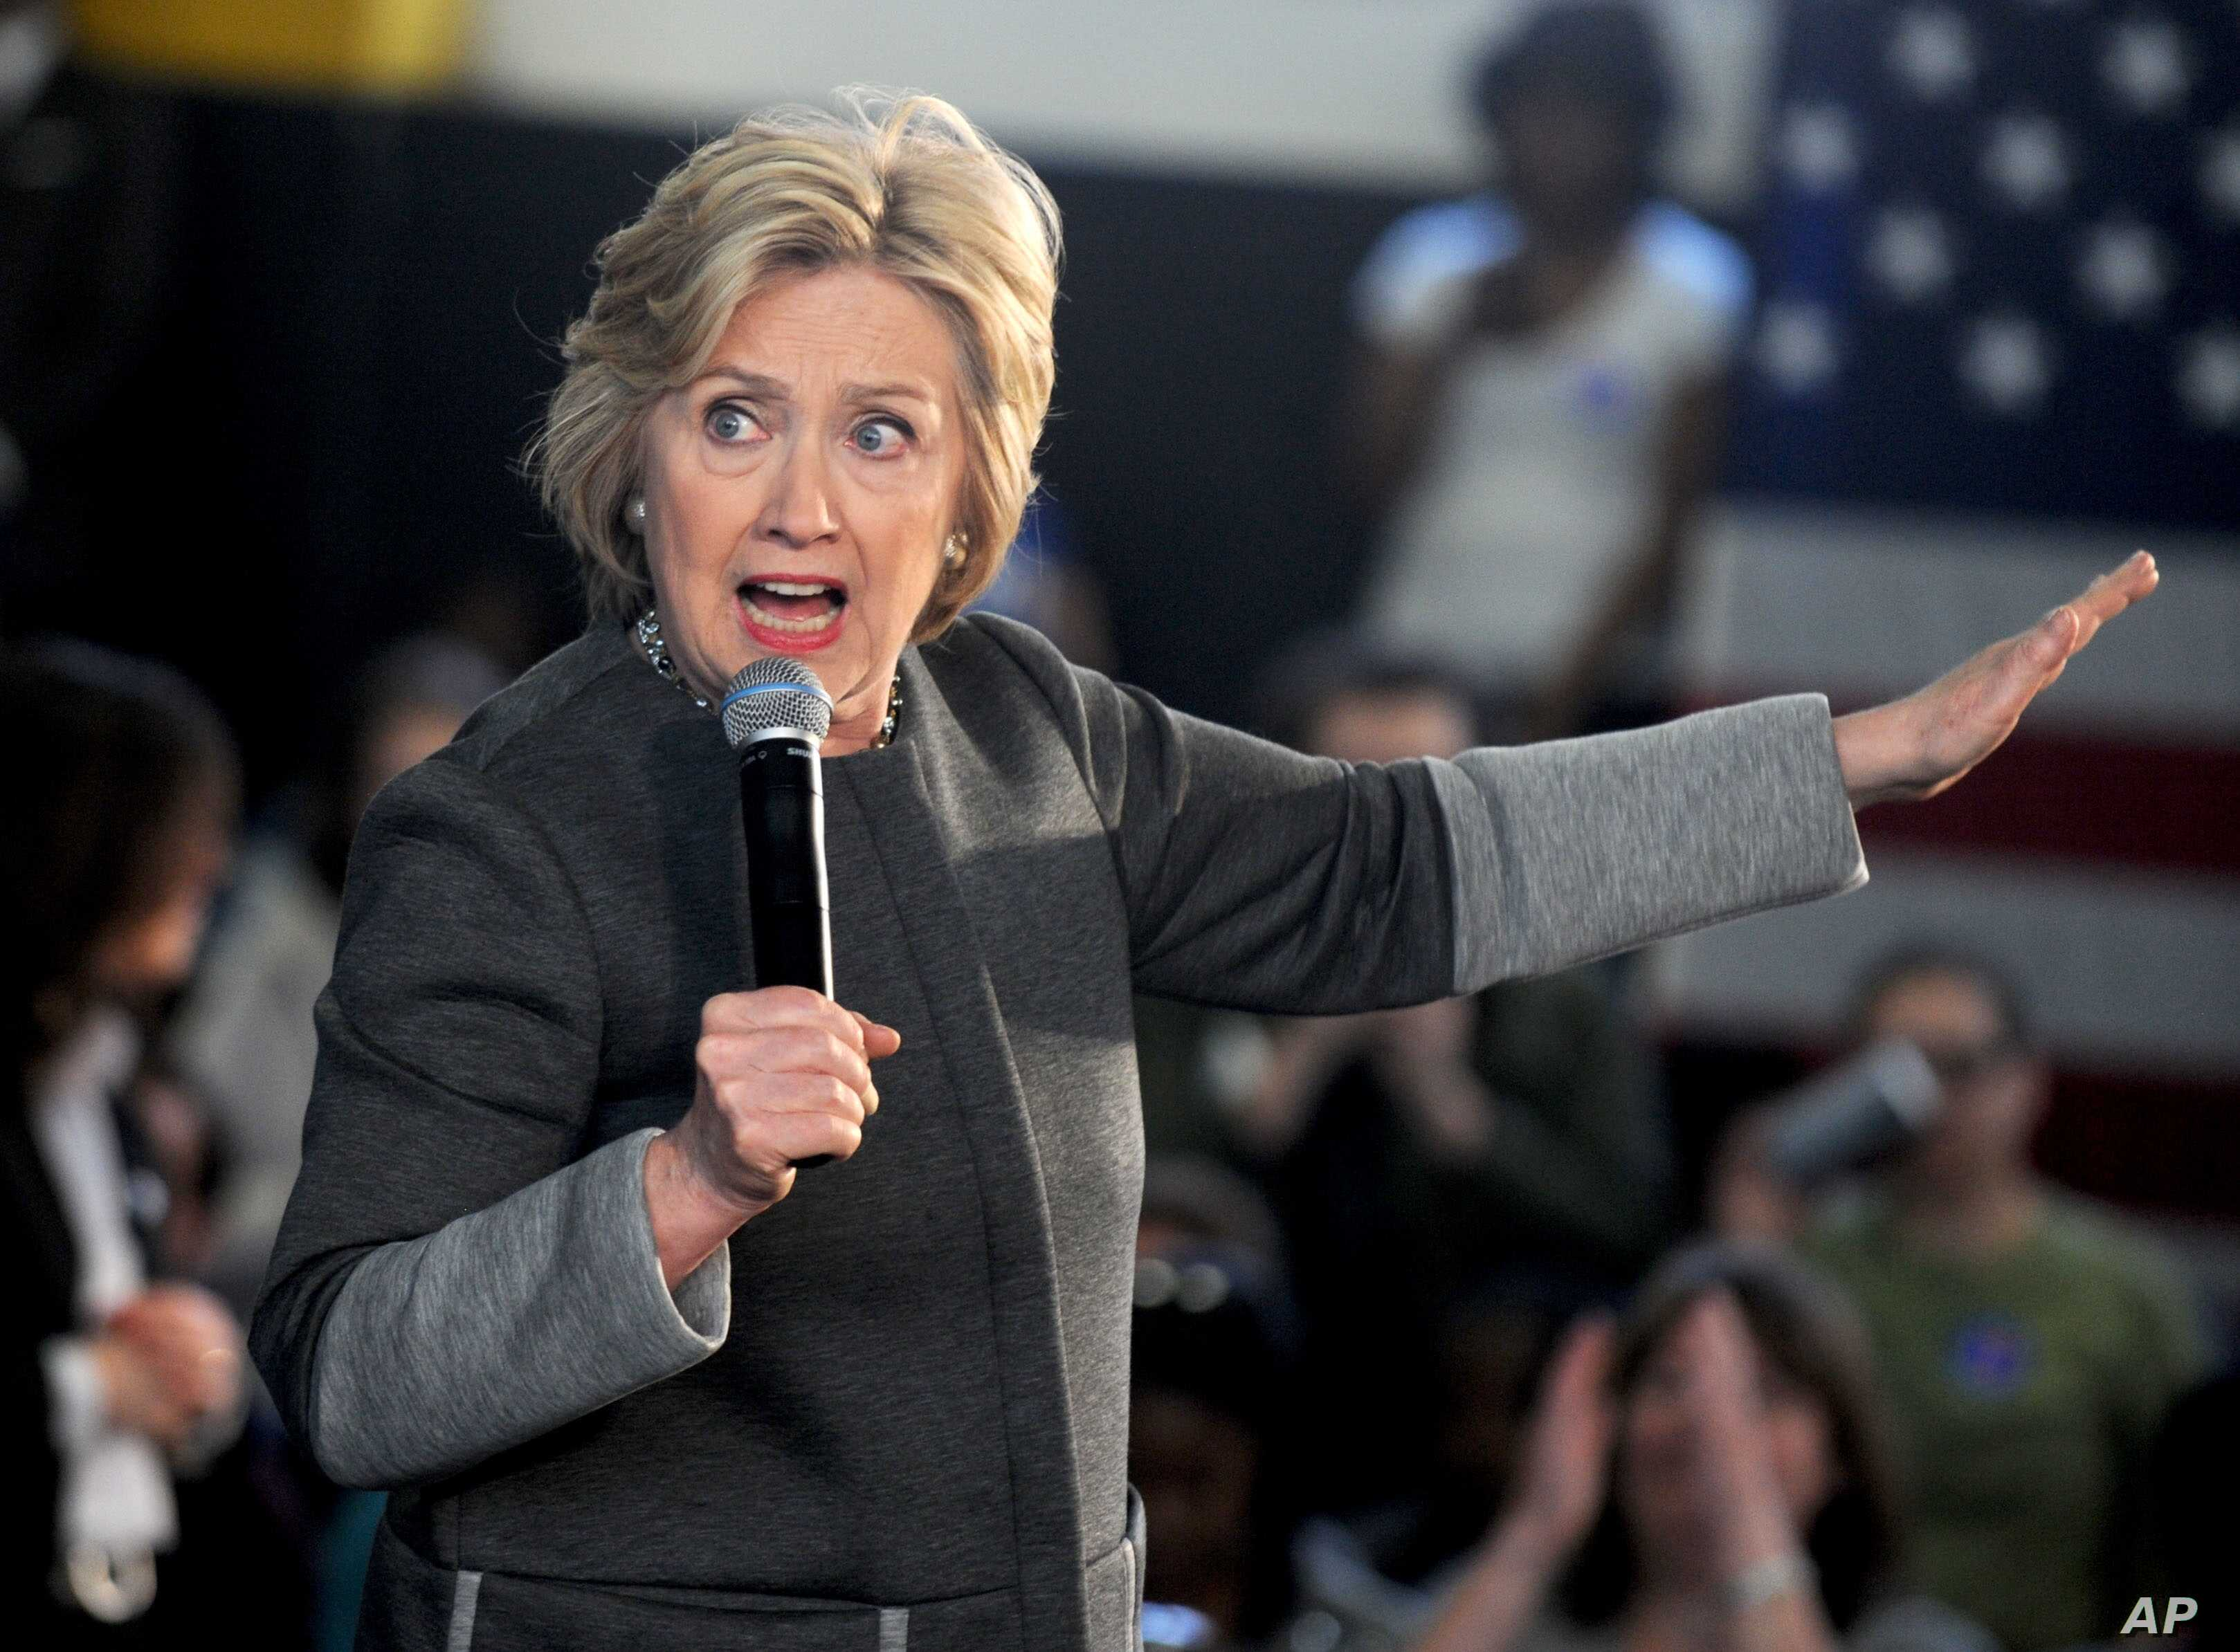 Democartic presidential candidate Hillary Clinton speaks during a campaign event April 5, 2016, in New York City.